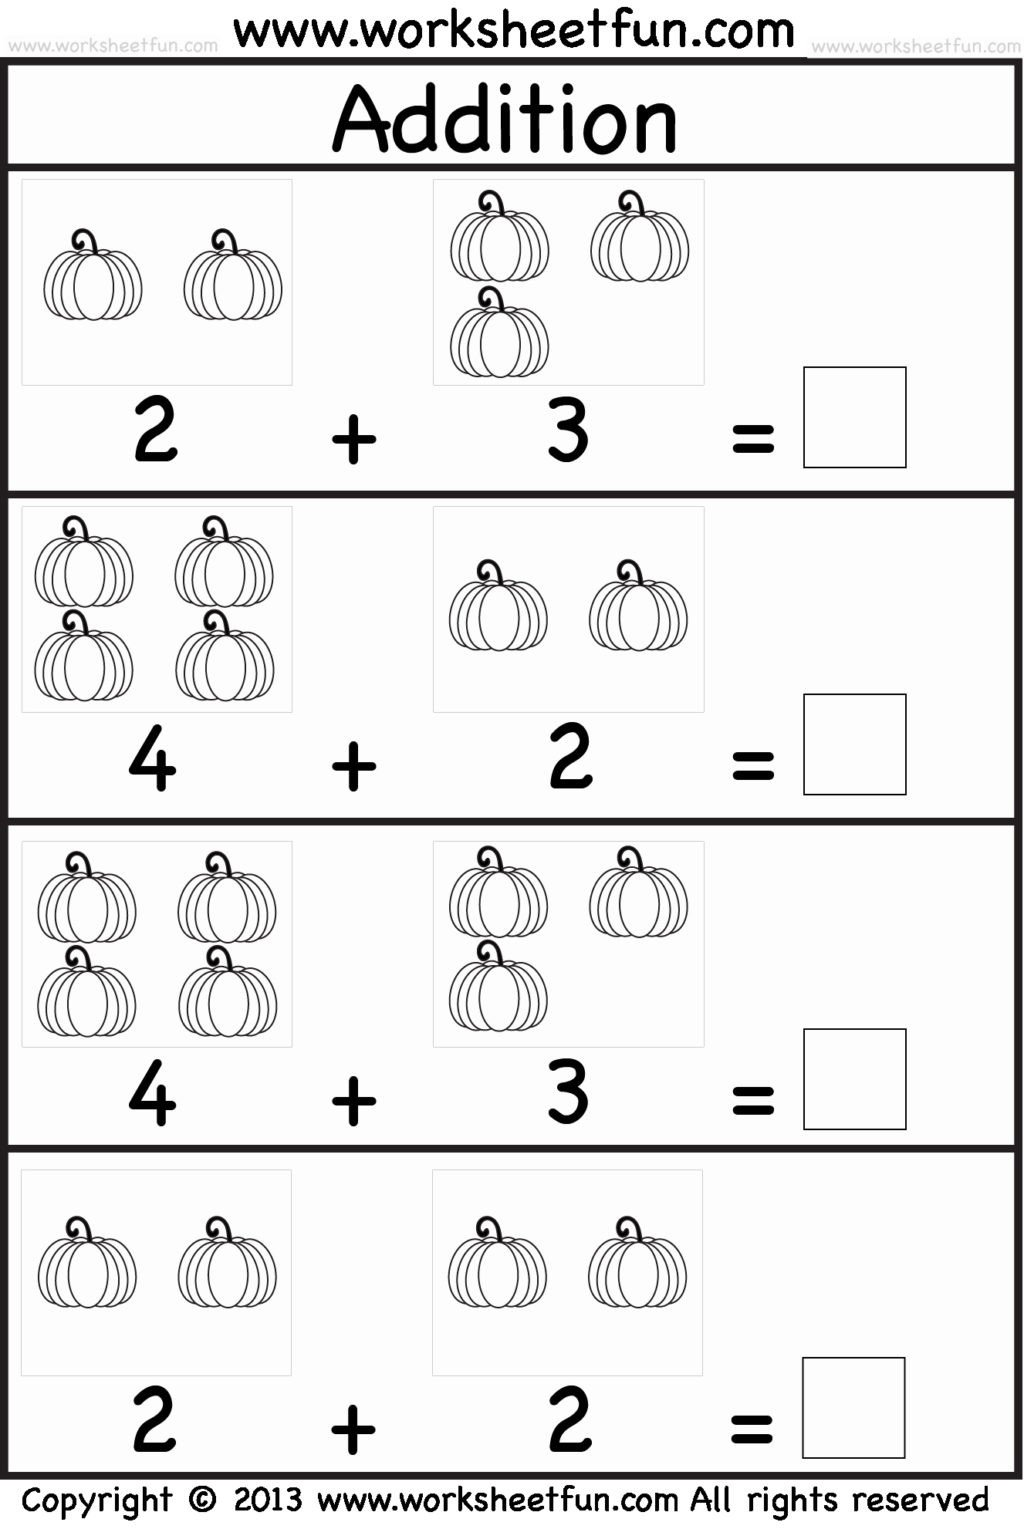 Simple Addition Worksheets for Kindergarten Math Worksheet Kindergarten Math Worksheets